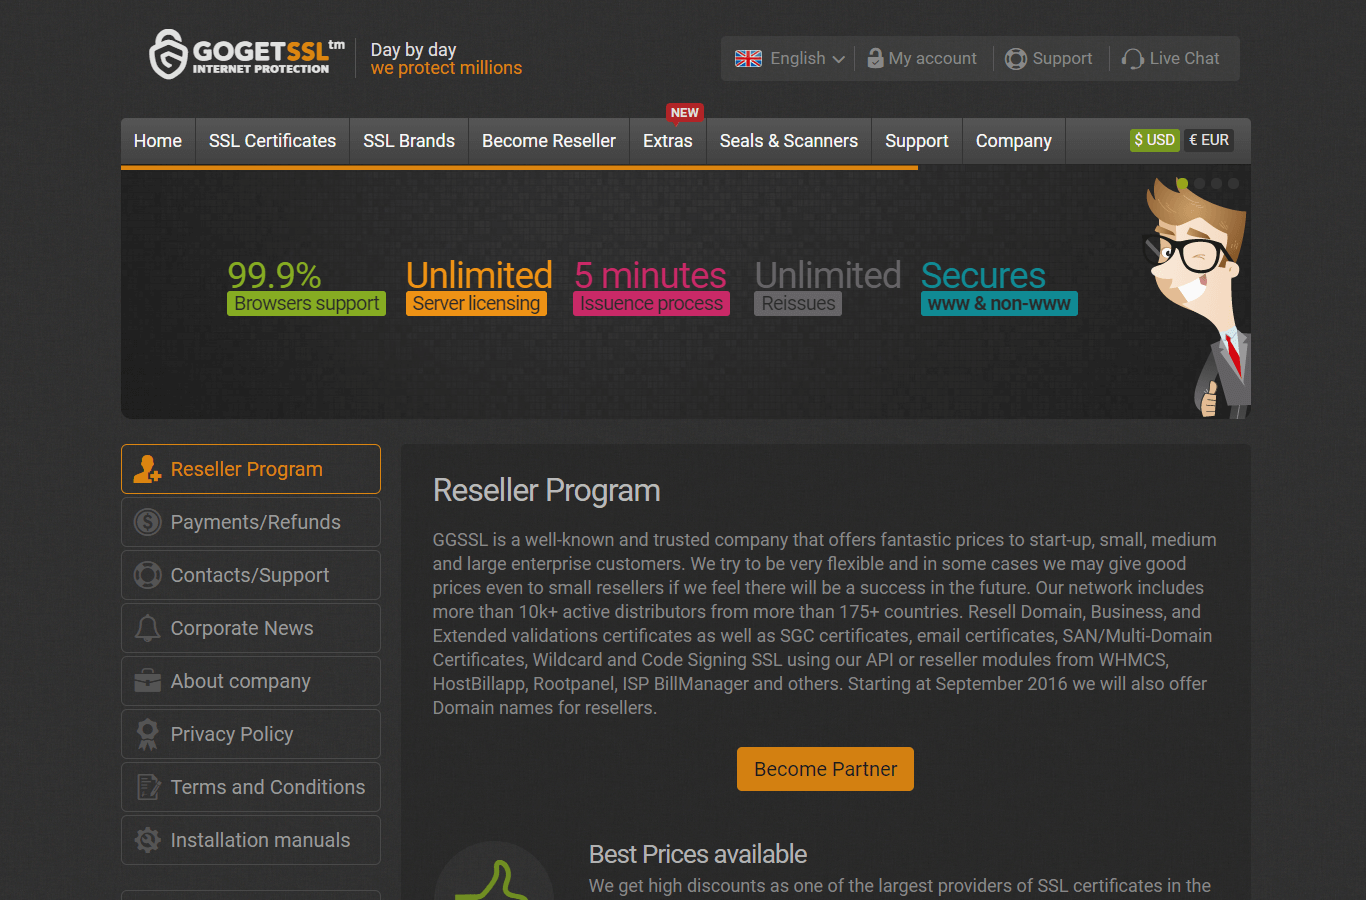 GoGetSSL Reseller Program